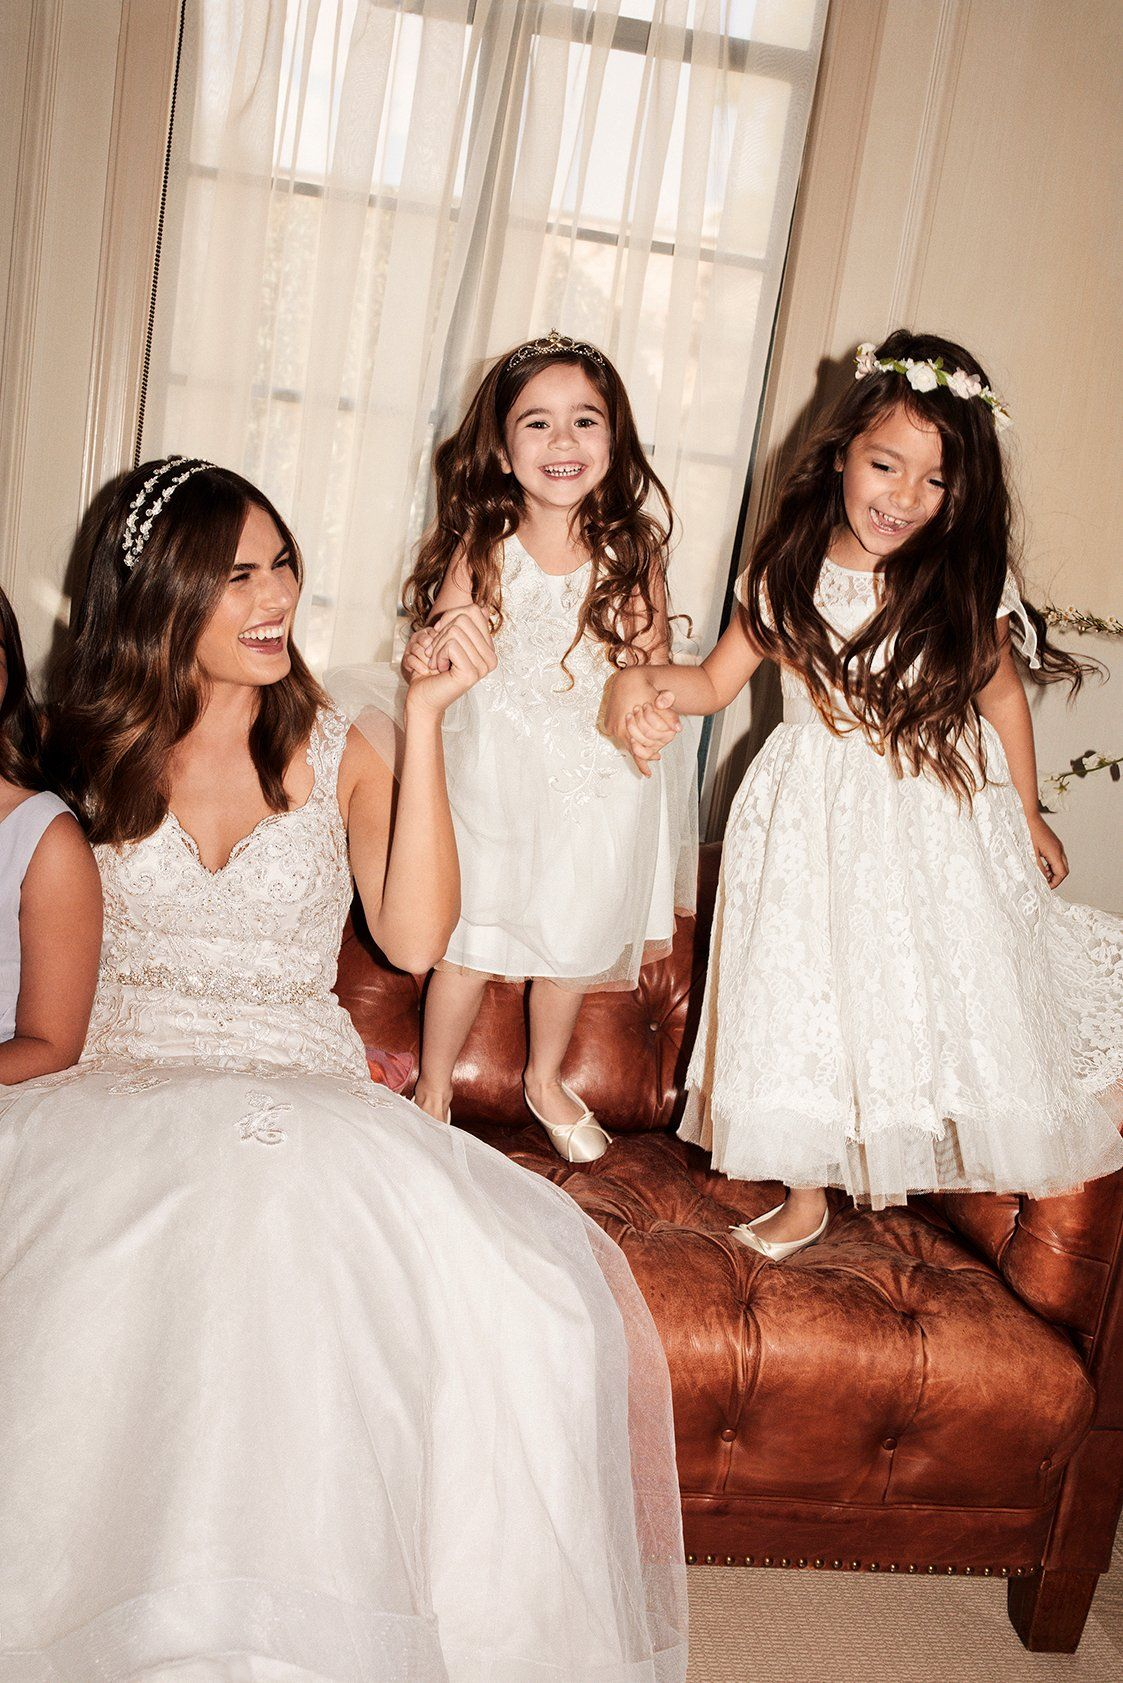 Girls wedding dress  Too cute Your flower girls deserve pretty white dresses too Shop